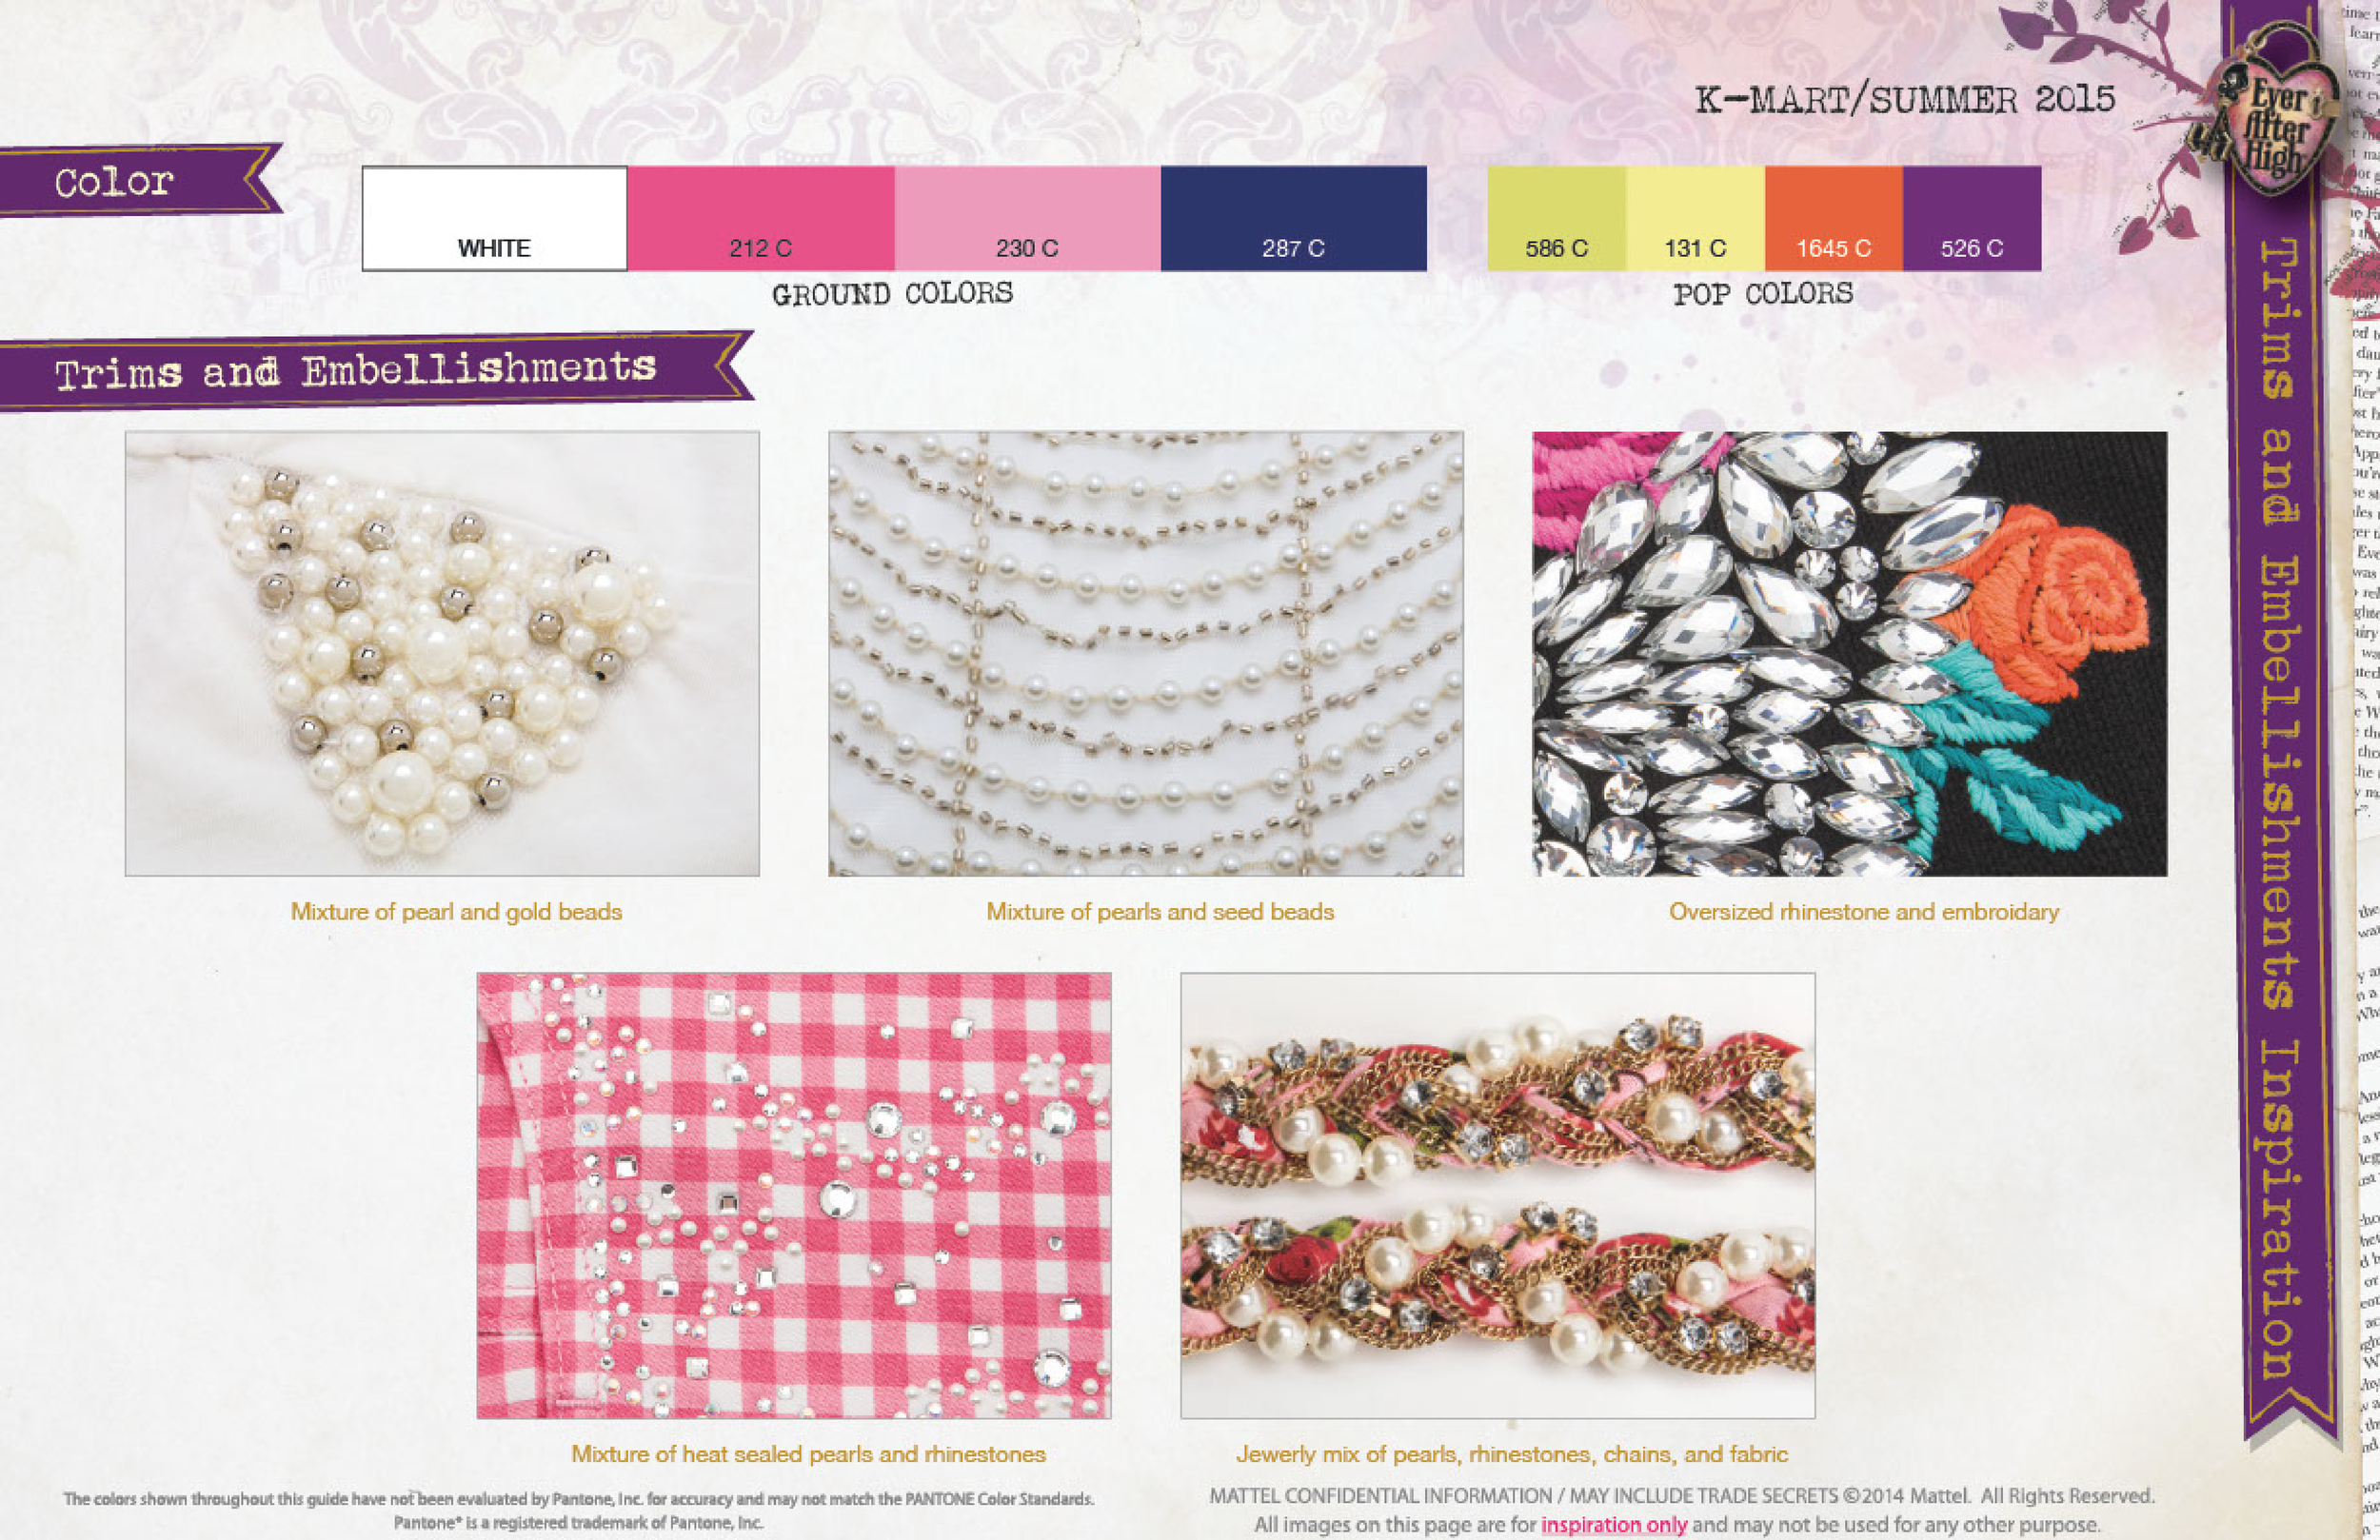 Fabrication and Embellishment Direction